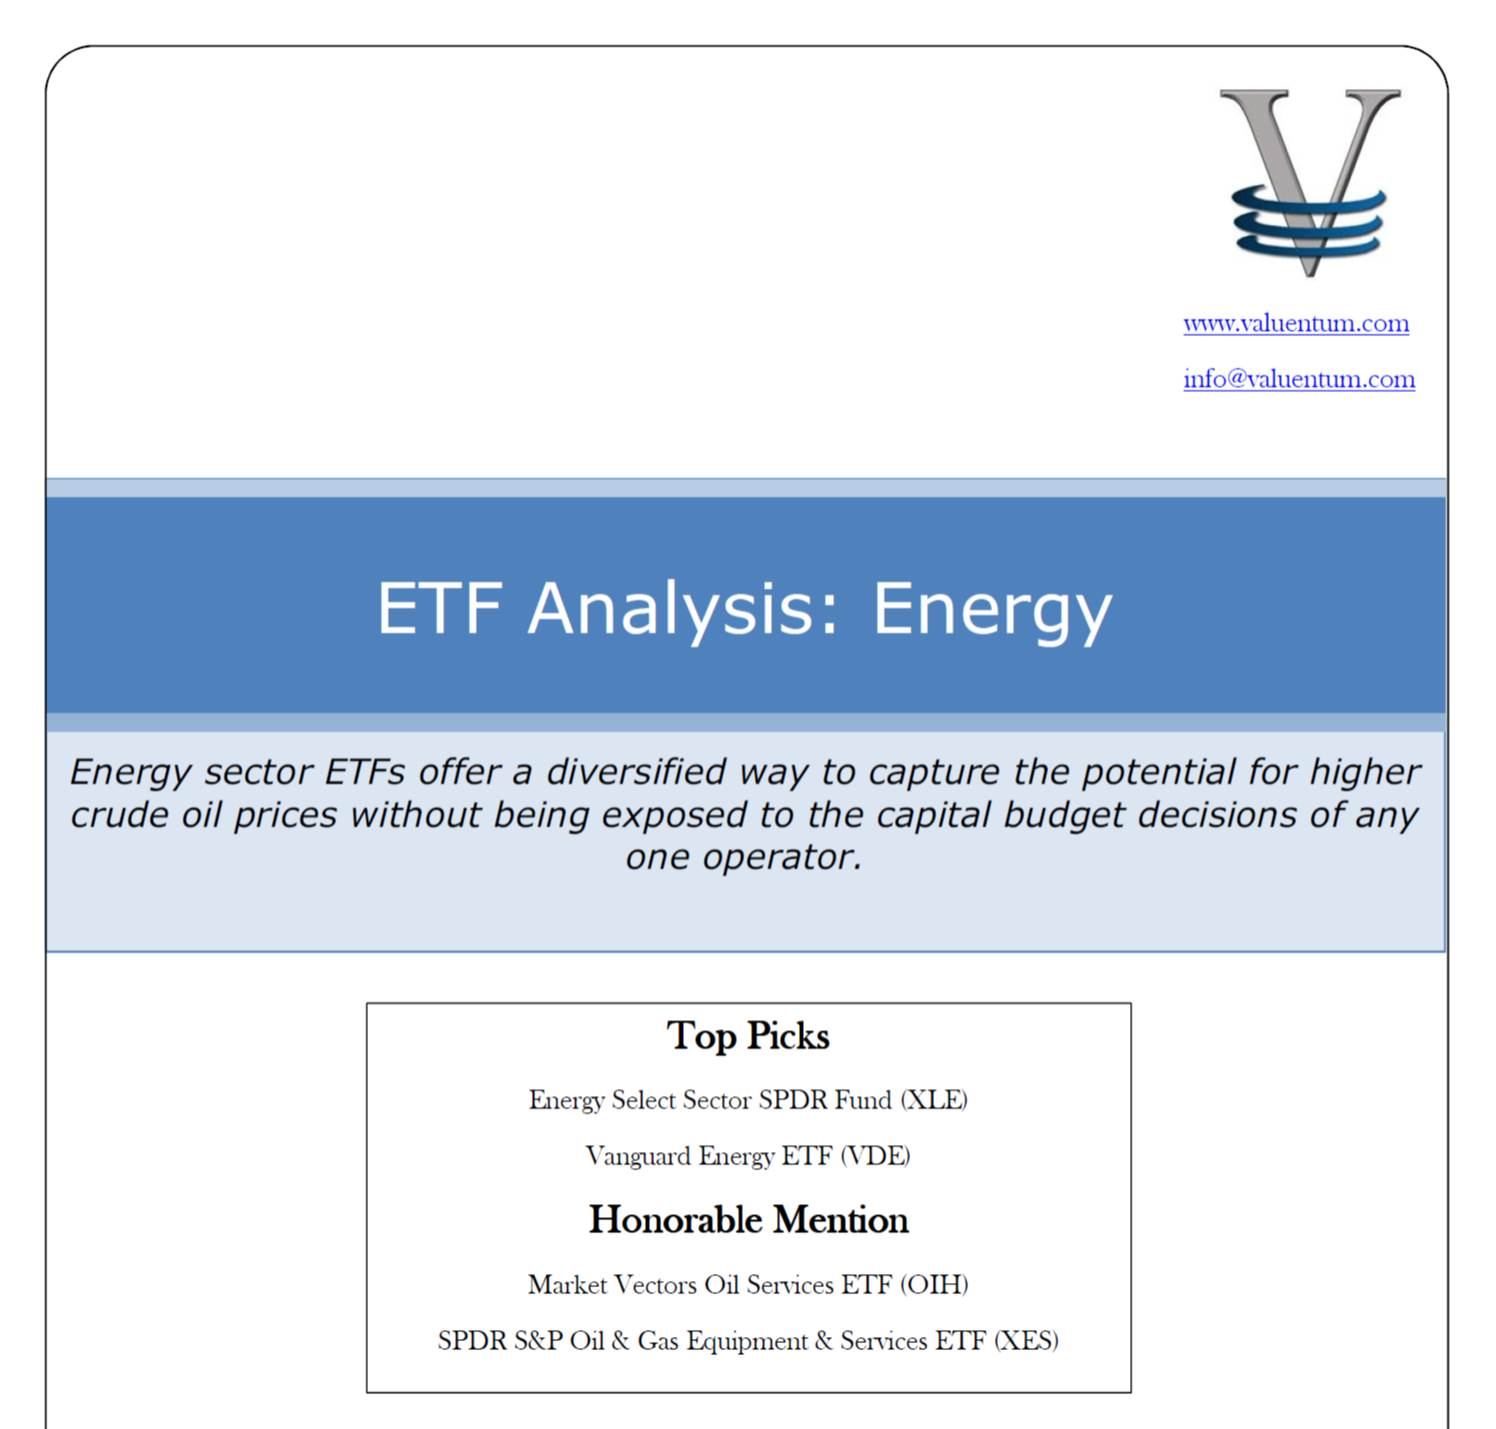 Etf analysis energy valuentum securities inc energy sector etfs offer a diversified way to capture the potential for higher crude oil prices without being exposed to the capital budget decisions of any biocorpaavc Gallery